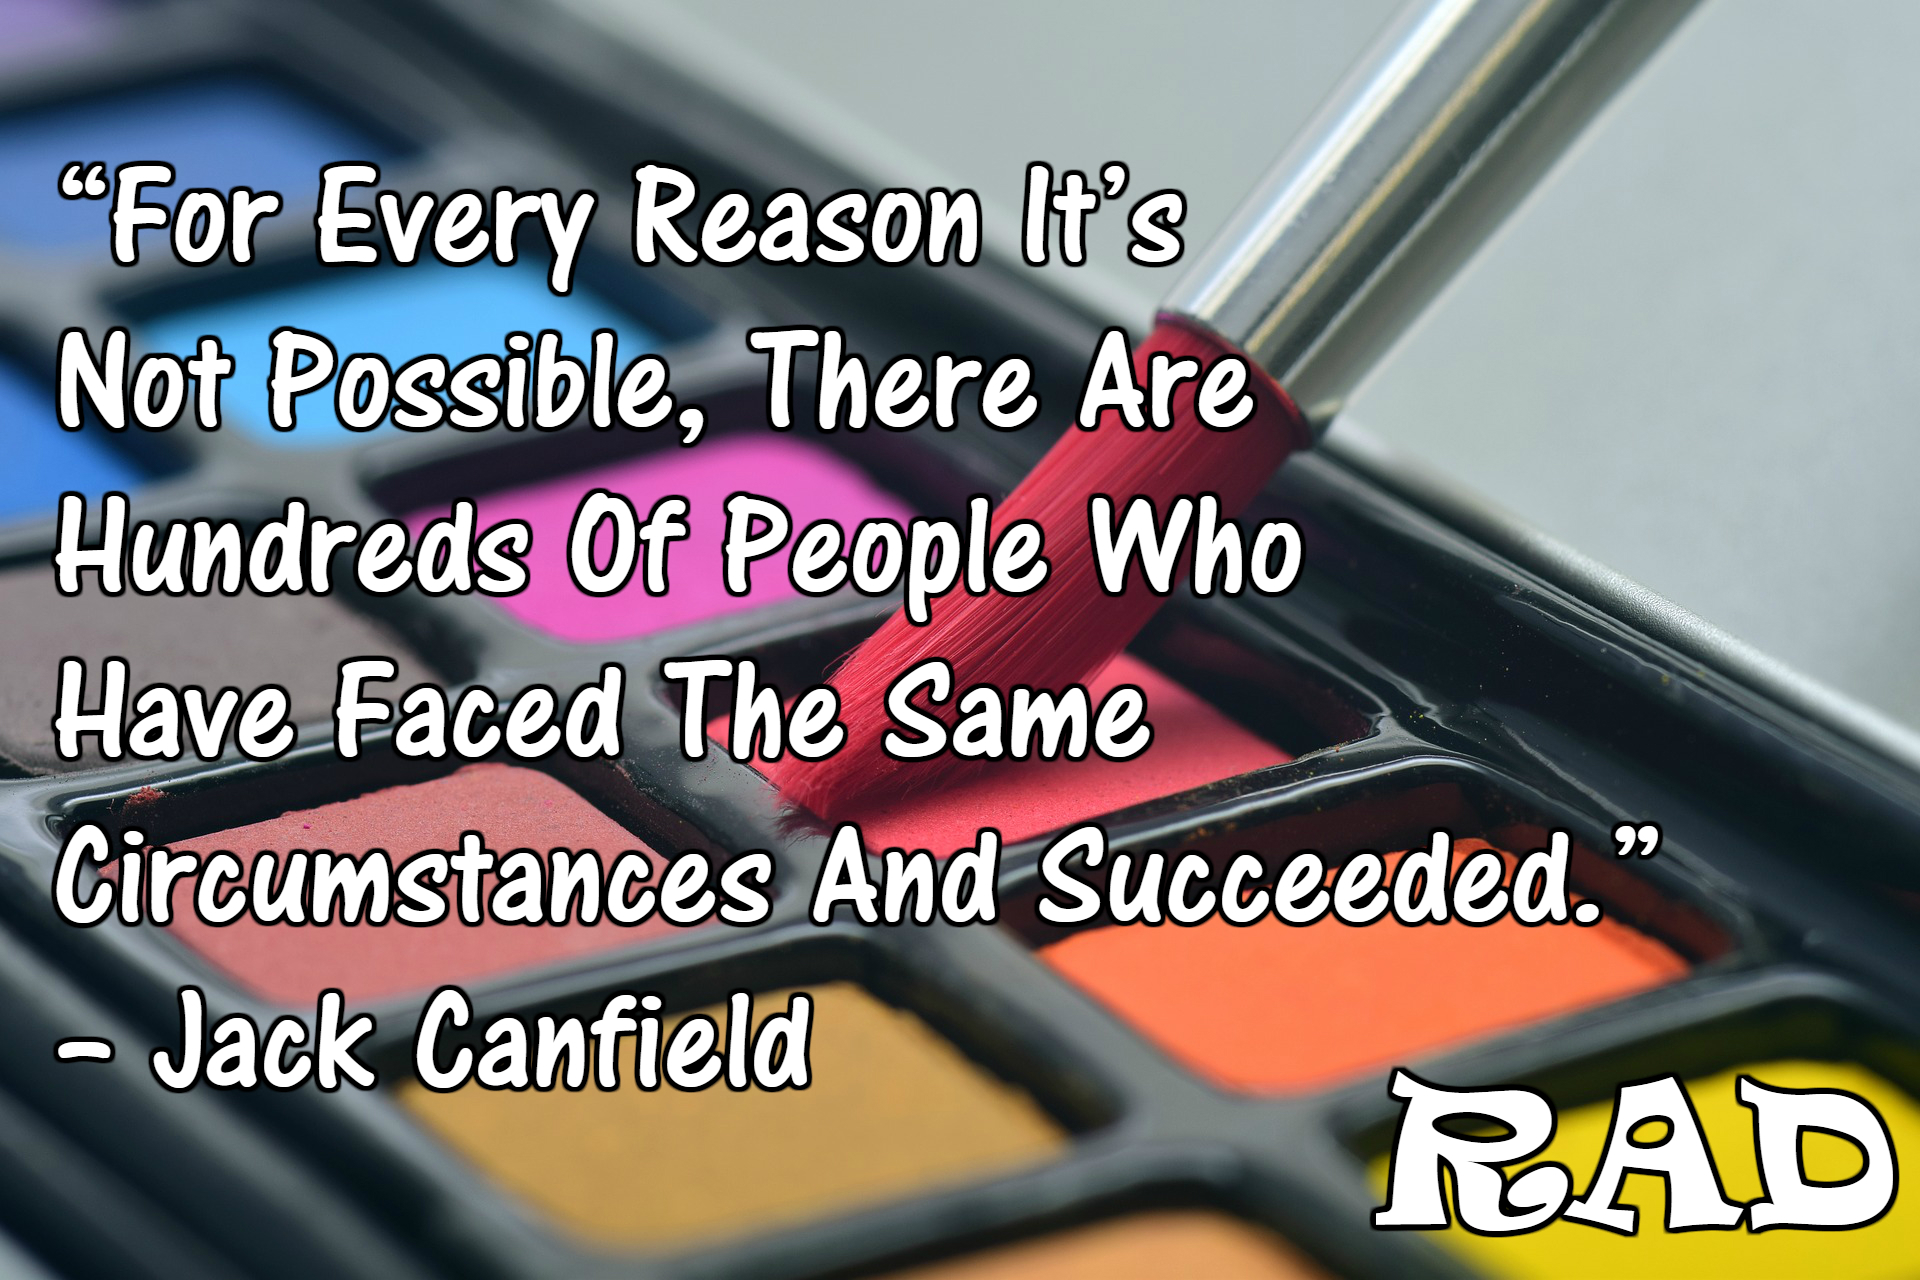 For every reason its not possible, there are hundreds of people who have faced the same circumstances and succeeded — Jack Canfield [1920*1280]